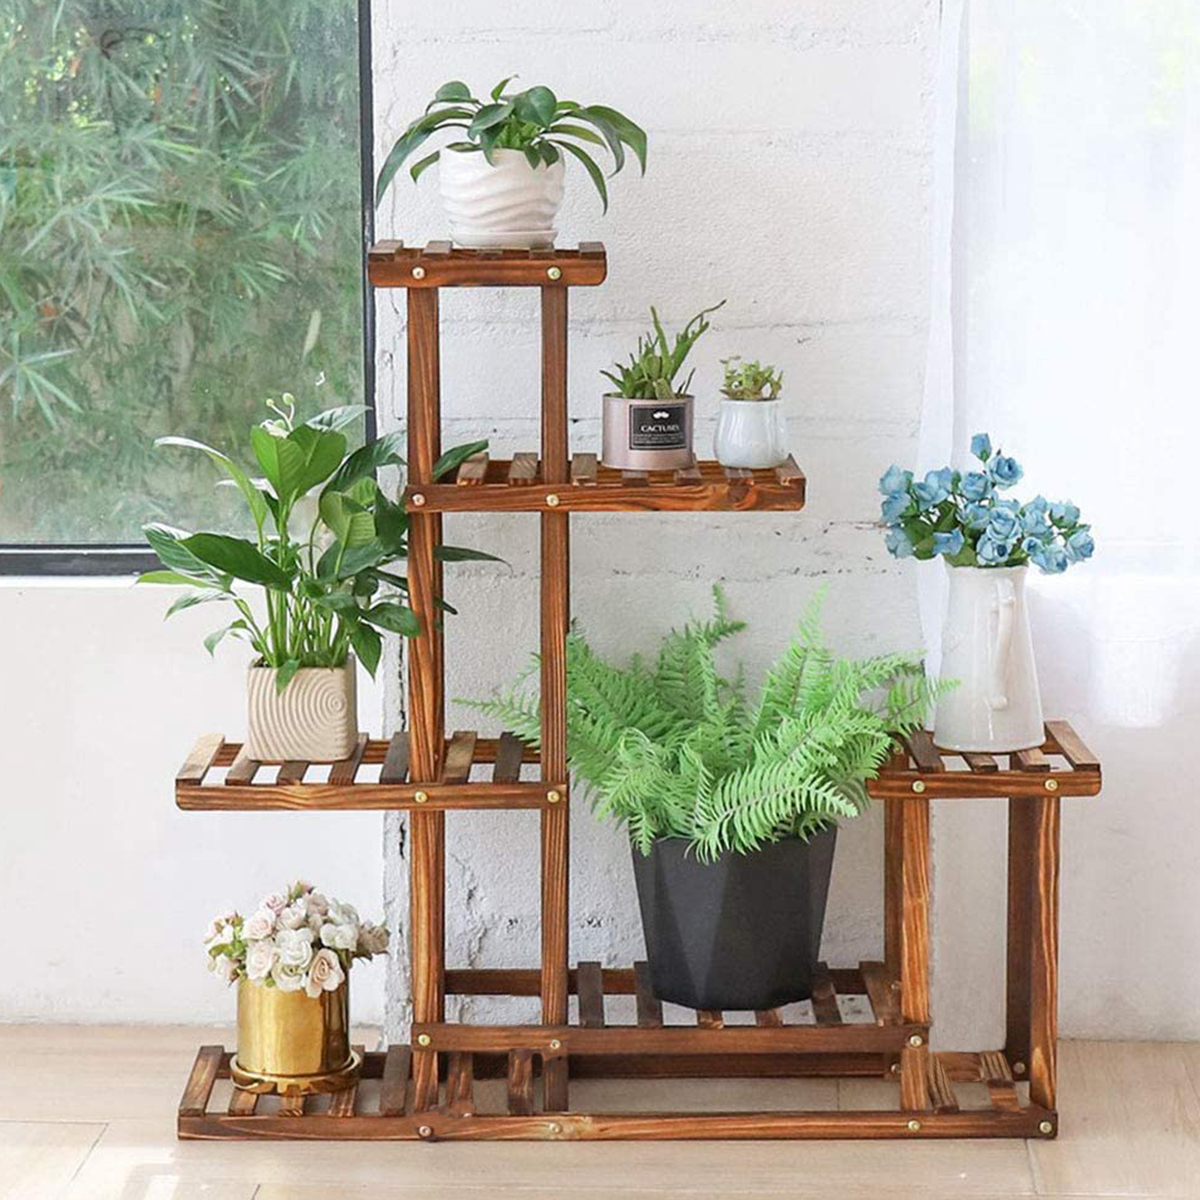 6 Tier 38 Inch Stable Wooden Frame Plant Stand Flower Pot Planters Display Shelving Rack Home Organizer Shelf For Indoor Outdoor Patio Yard Walmart Com Walmart Com